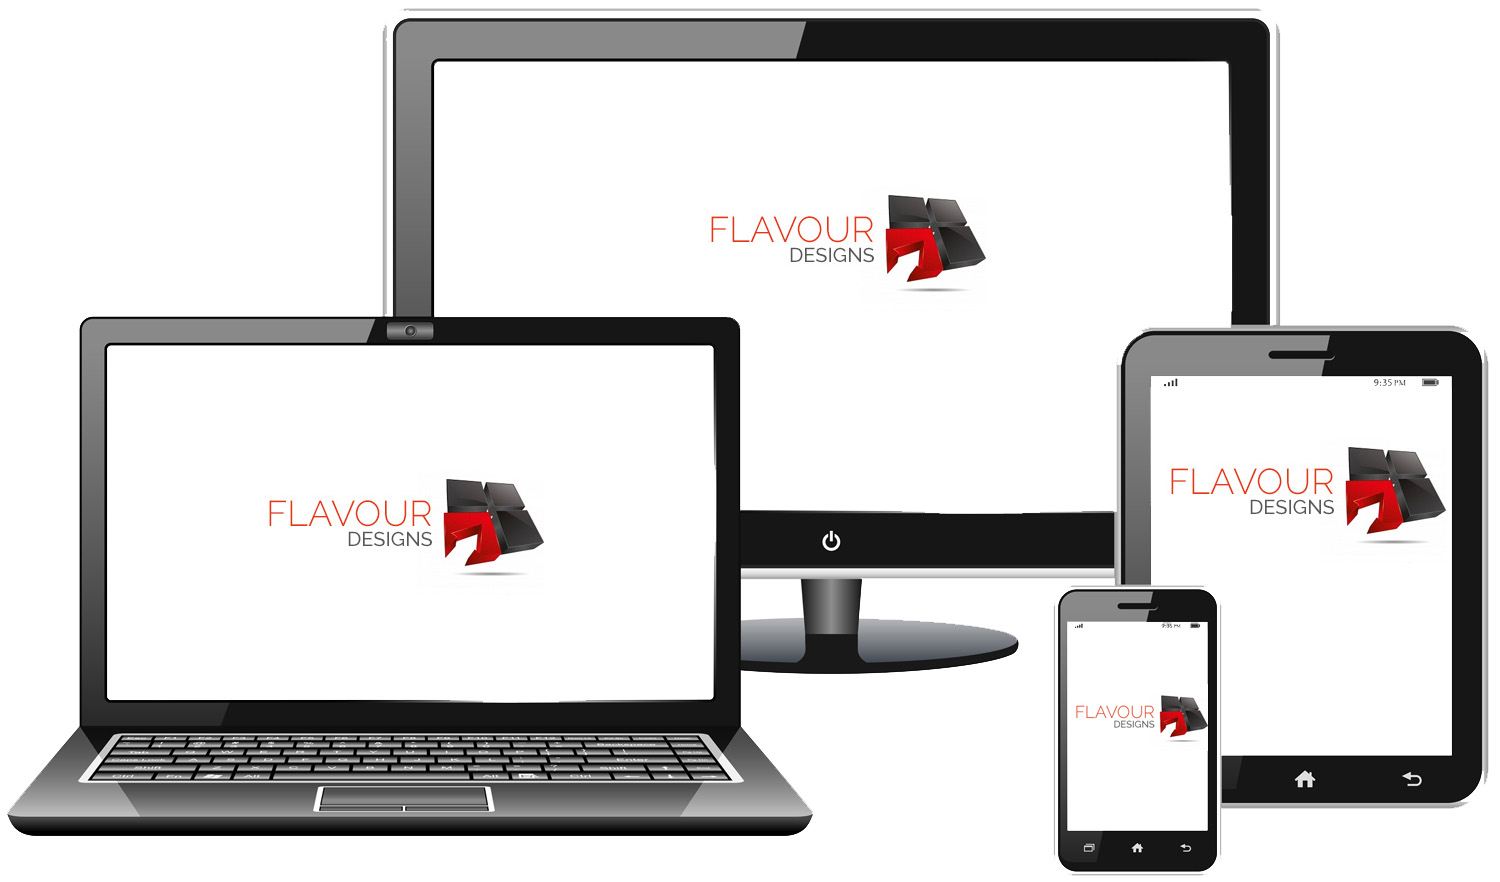 responsive design | ecommerce website development | flavour designs